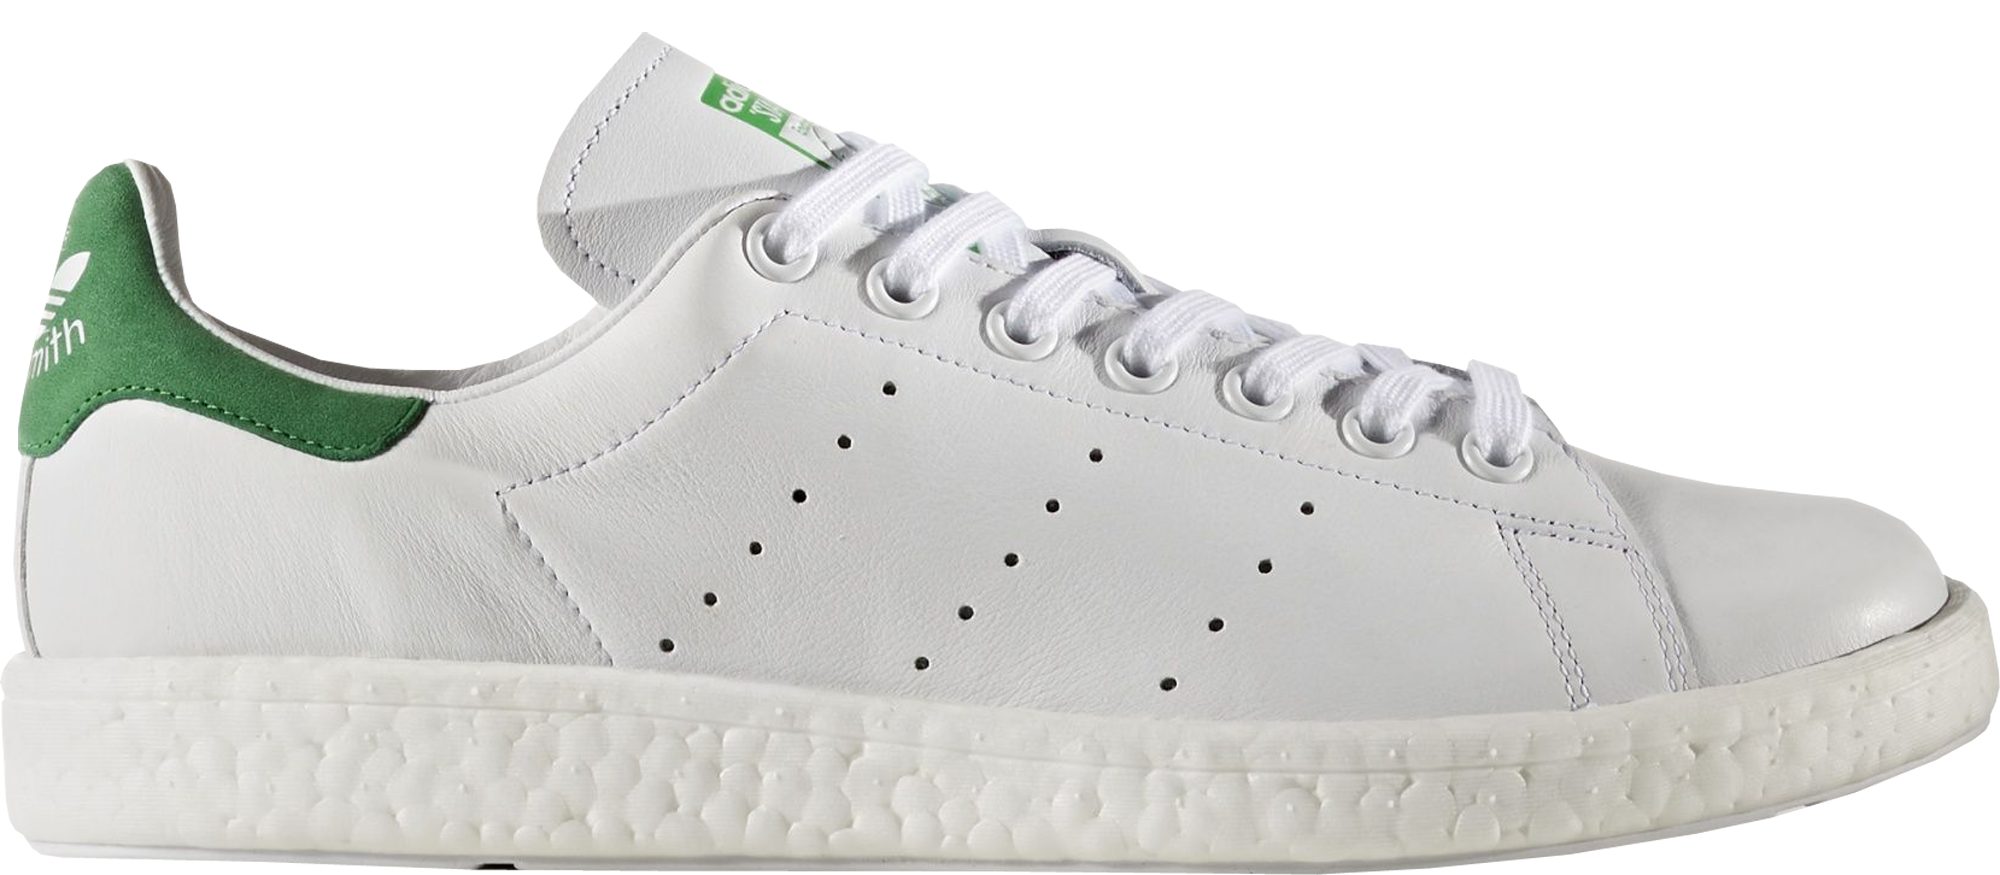 adidas Stan Smith Boost White Green